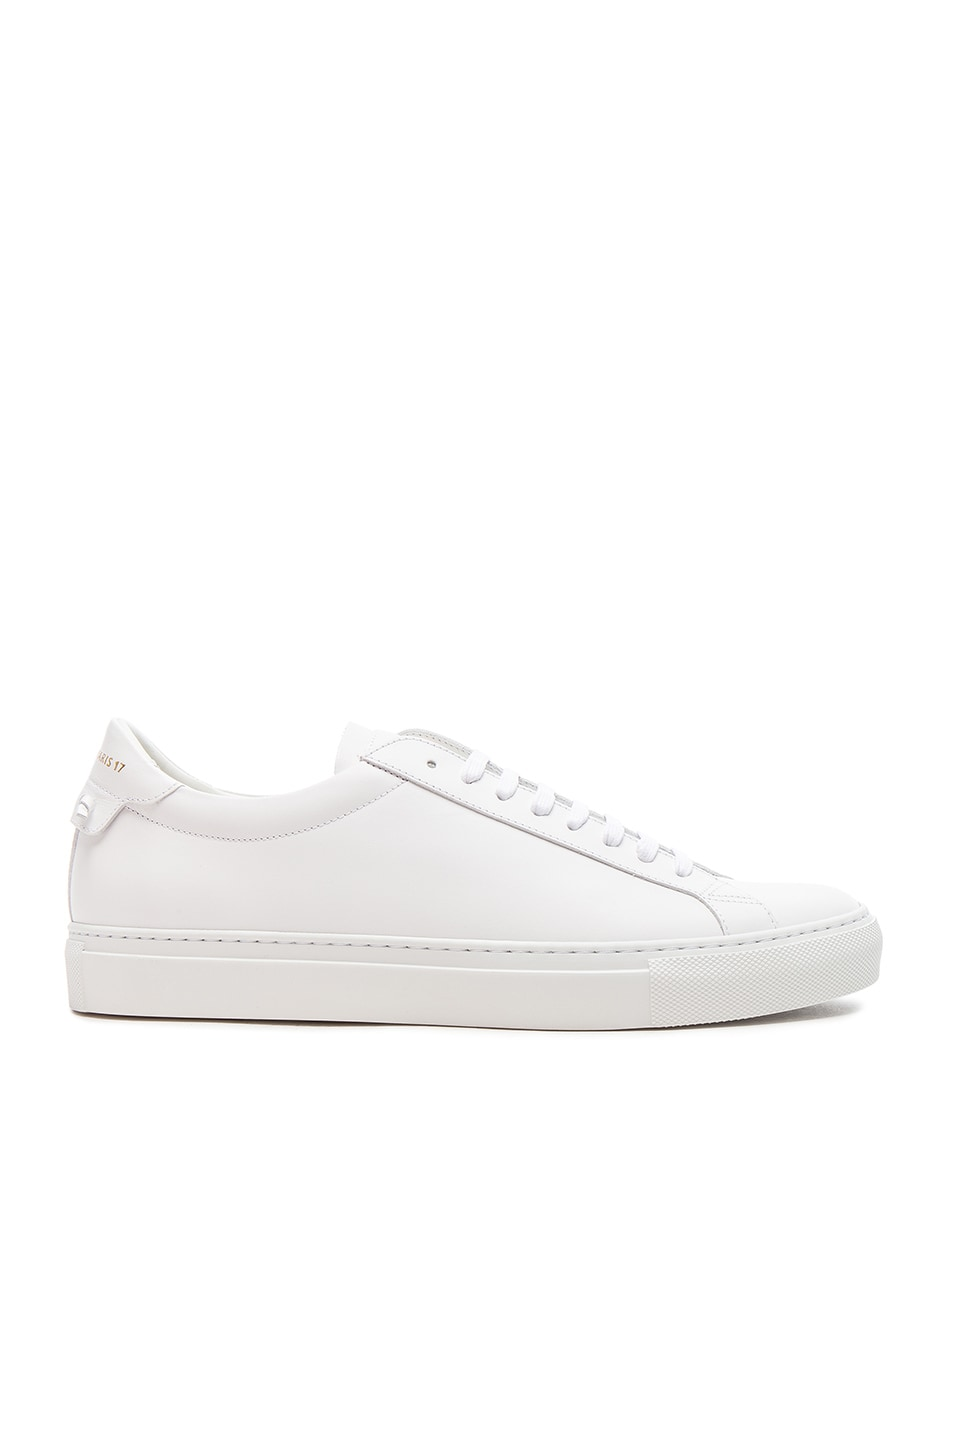 Image 2 of Givenchy Leather Urban Tie Knot Sneakers in White